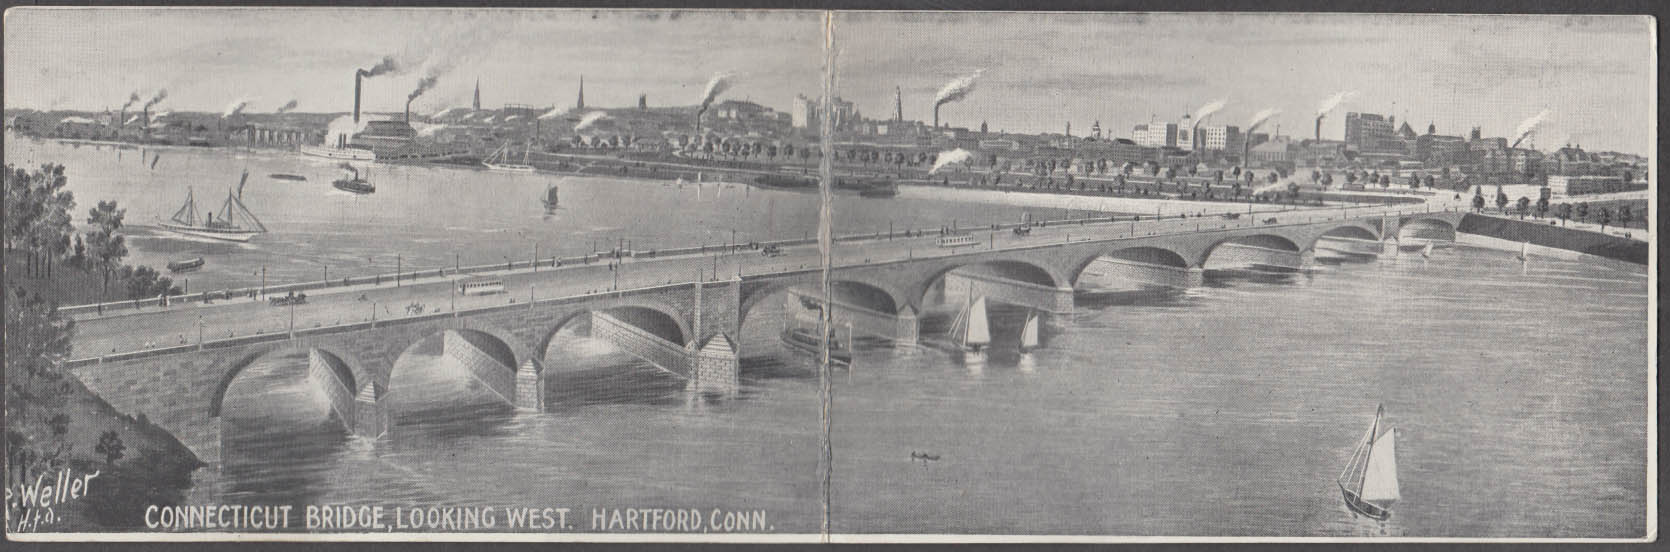 New Connecticut River Bridge [Bulkeley] Hartford double-wide postcard ca 1908